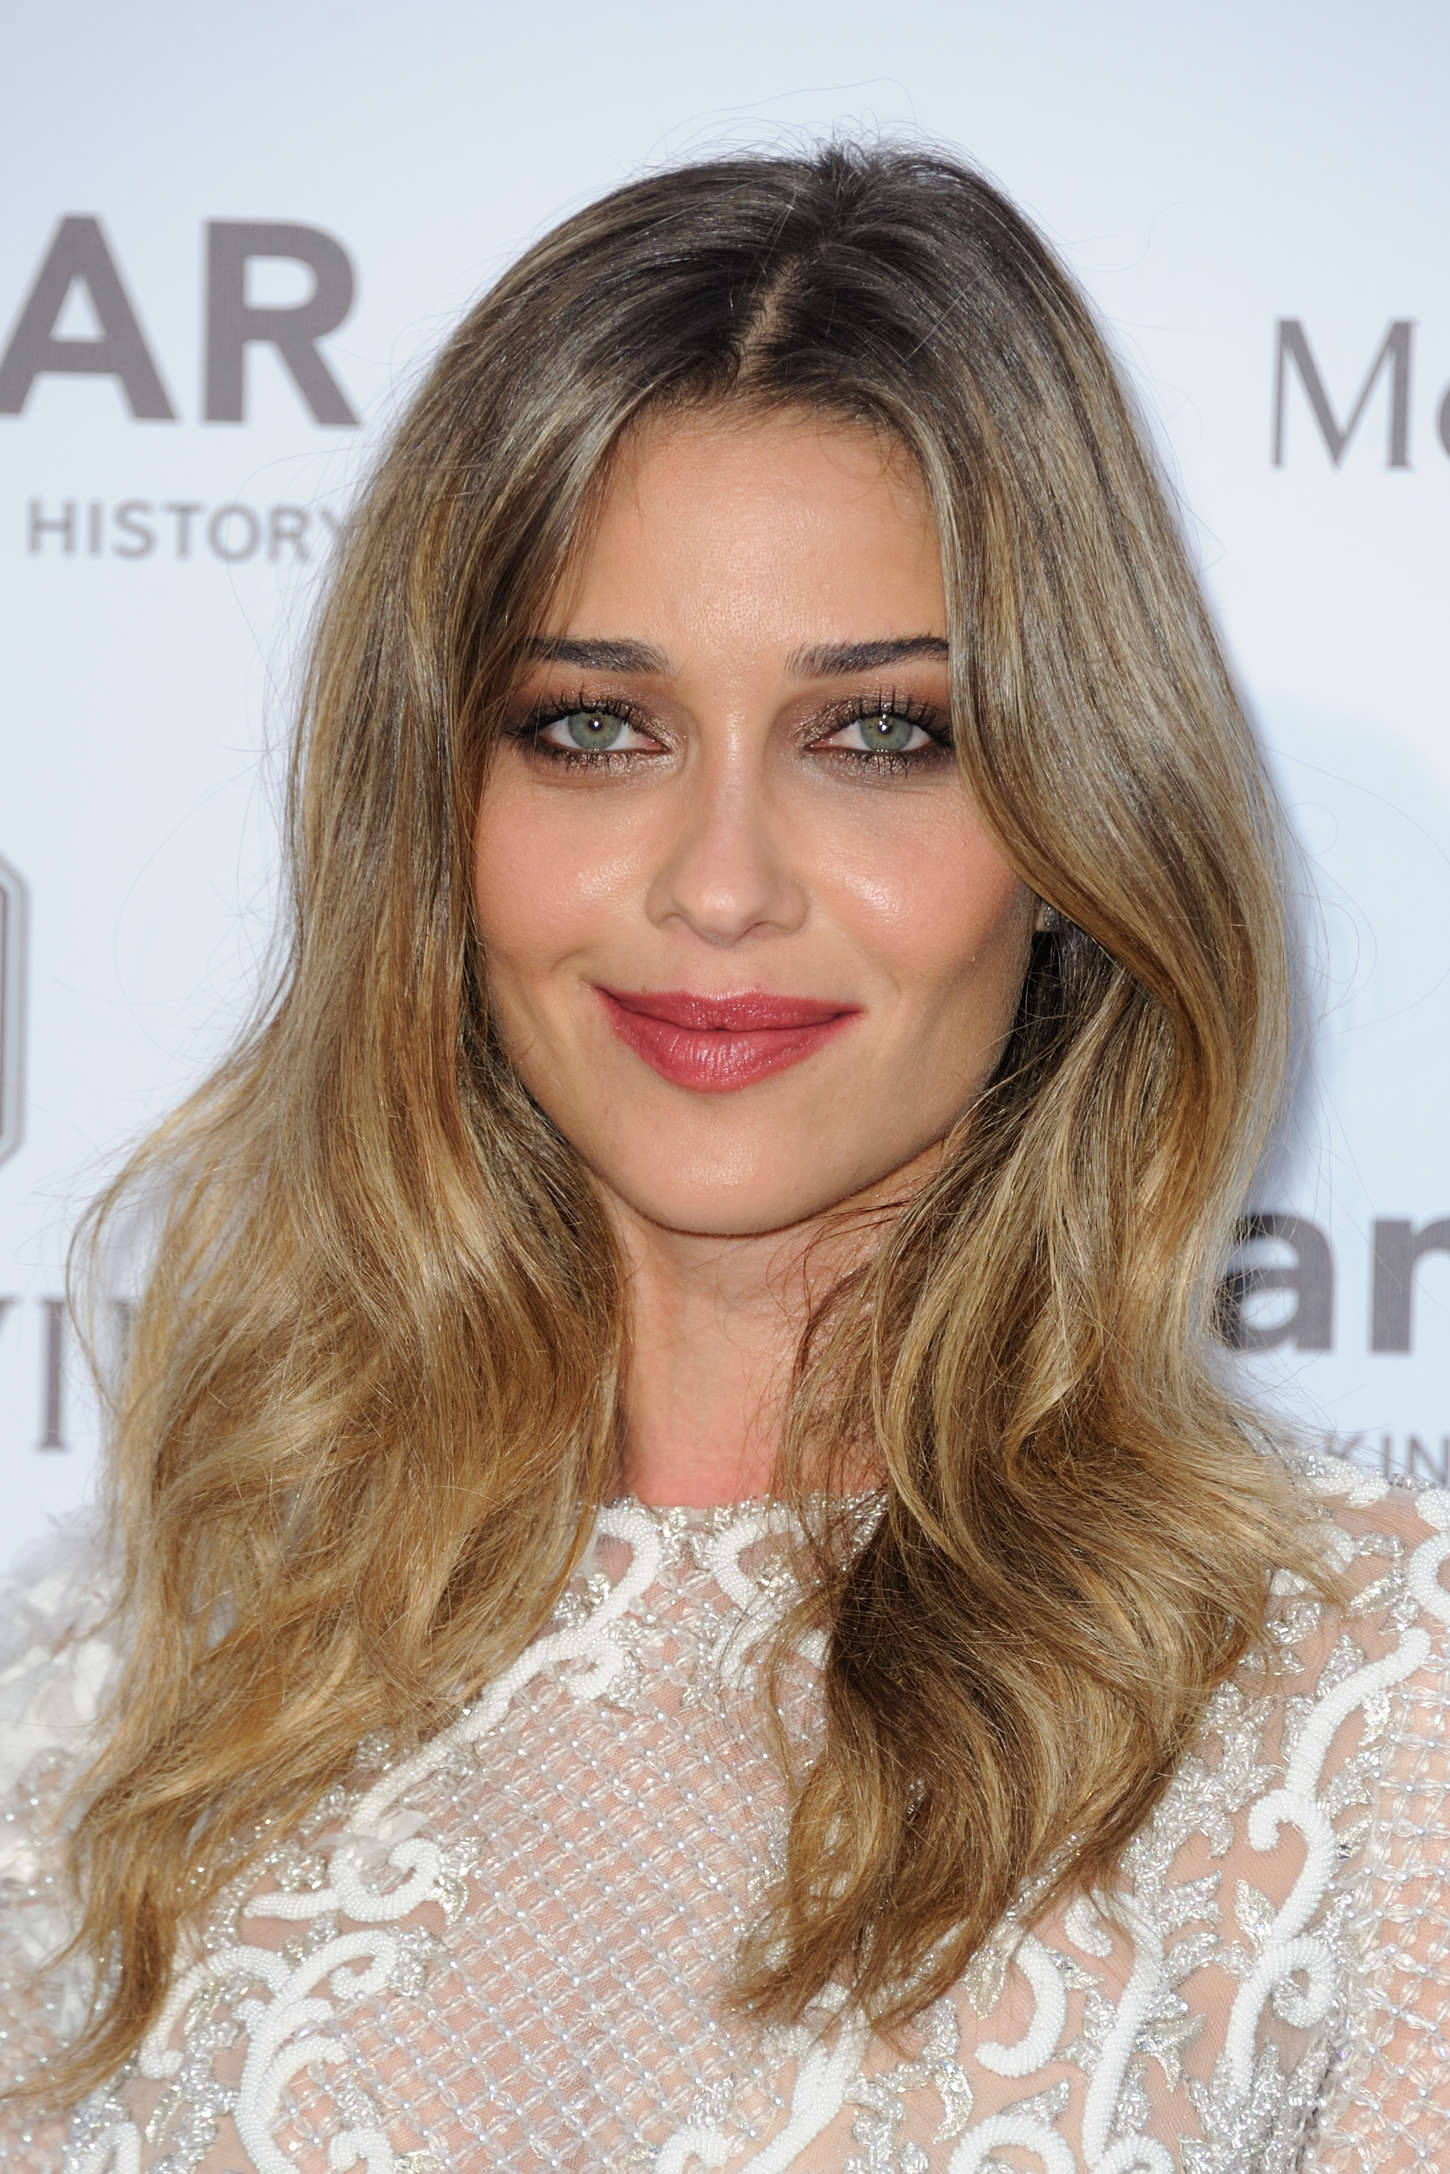 Ana Beatriz Barros amfAR Dinner in Paris